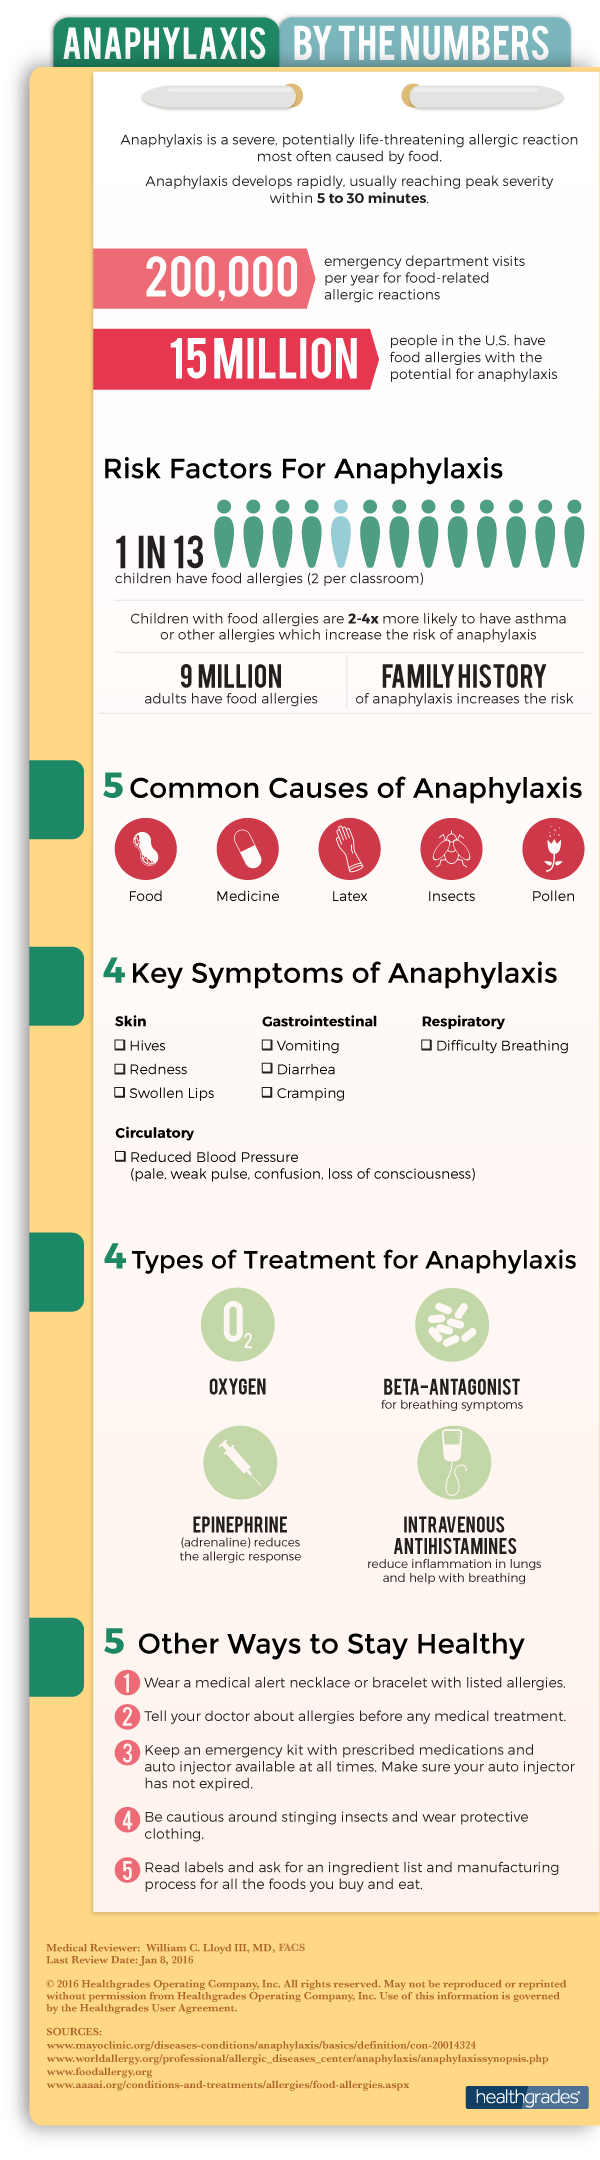 Anaphylaxis By the Numbers Infographic Image